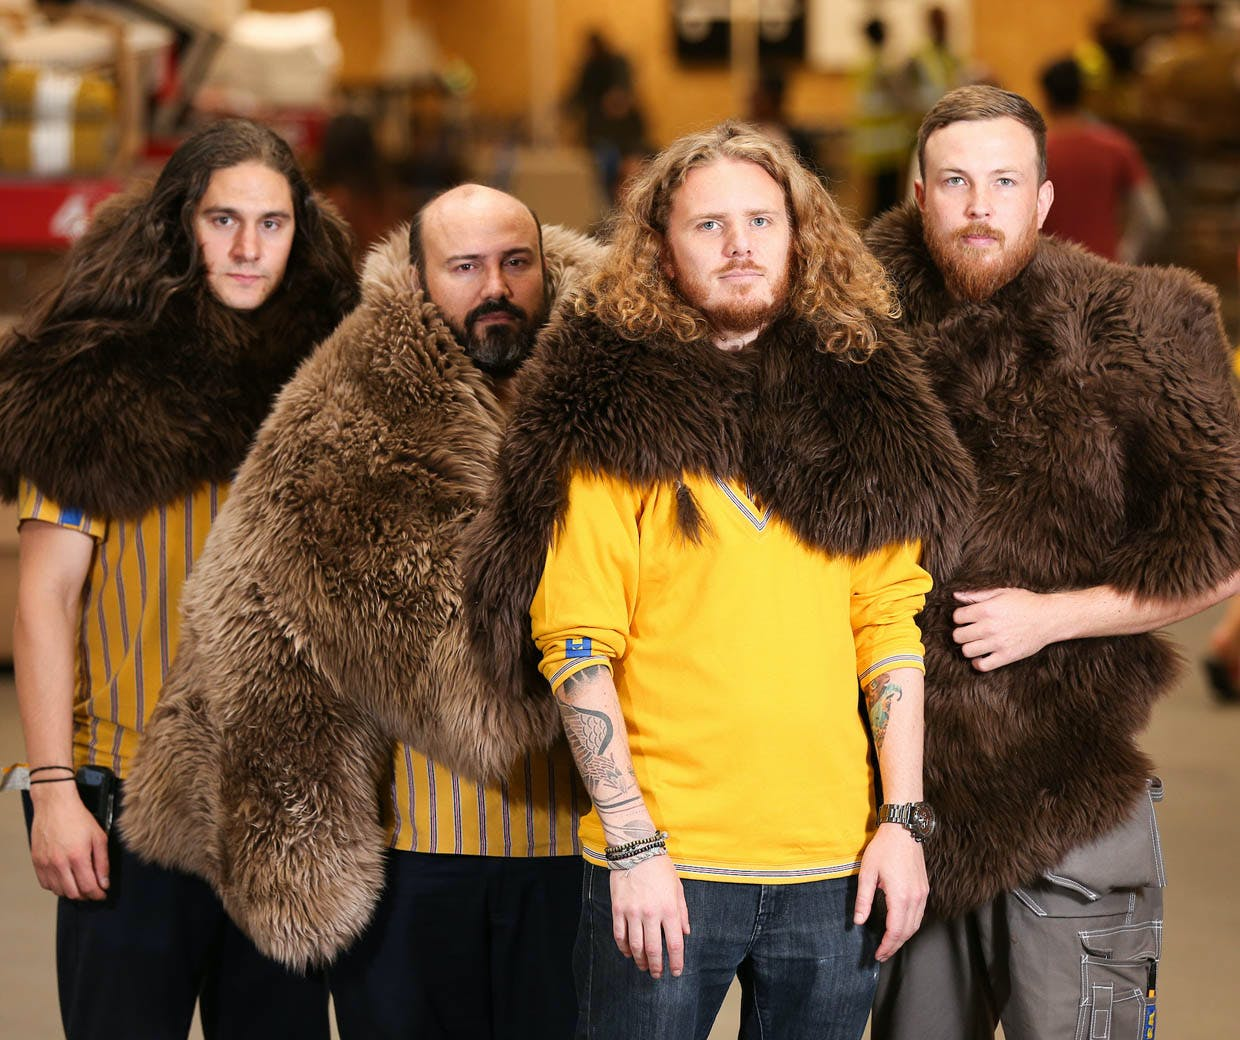 Ikea Game Of Thrones And The Power Of Reactionary Marketing